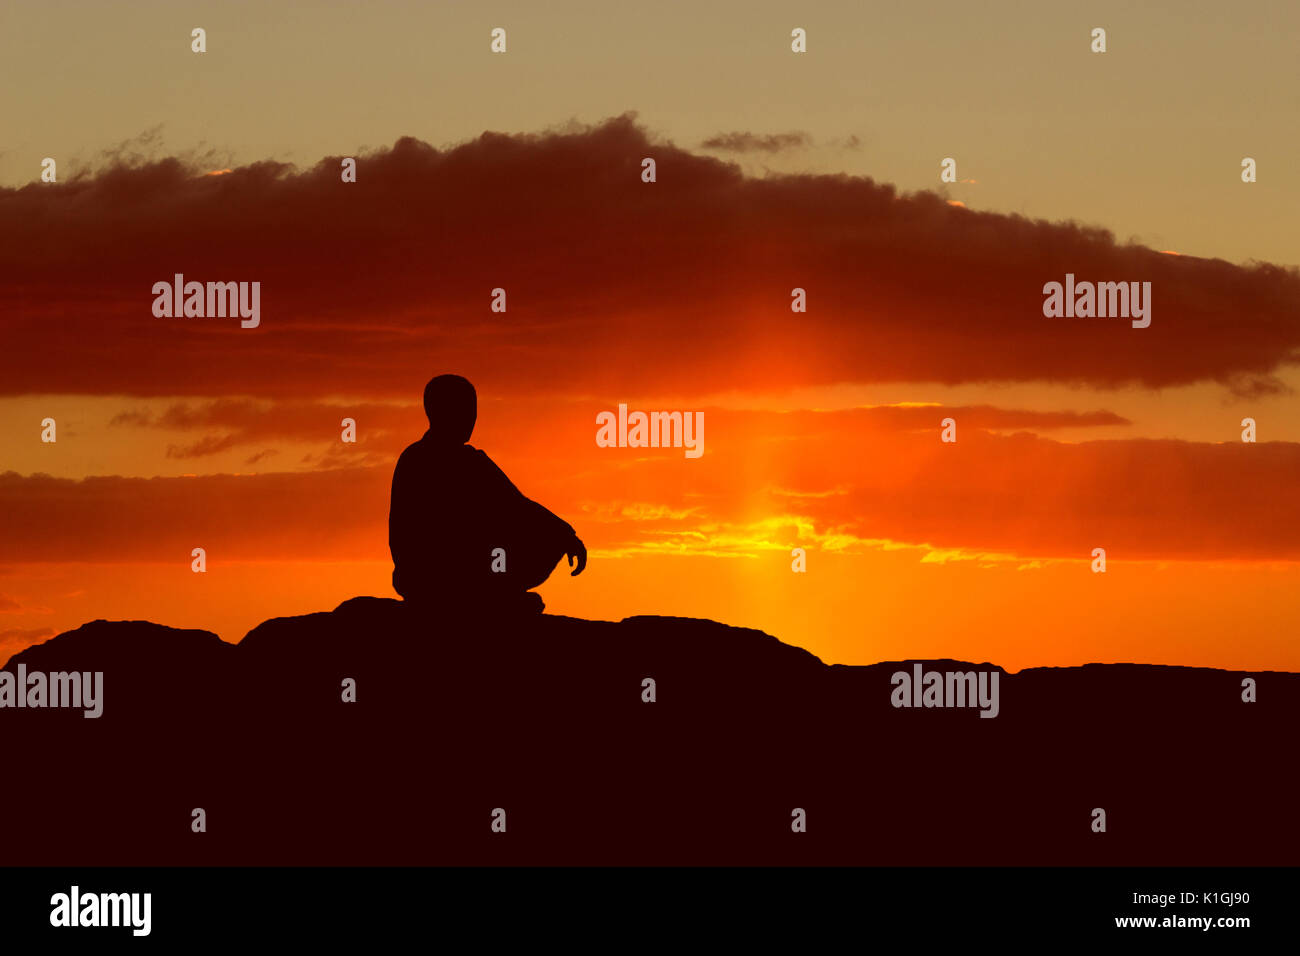 buddhist single men in sunset Here are the rules to dating according to buddha beliefnet buddhism dating rules according to buddha.